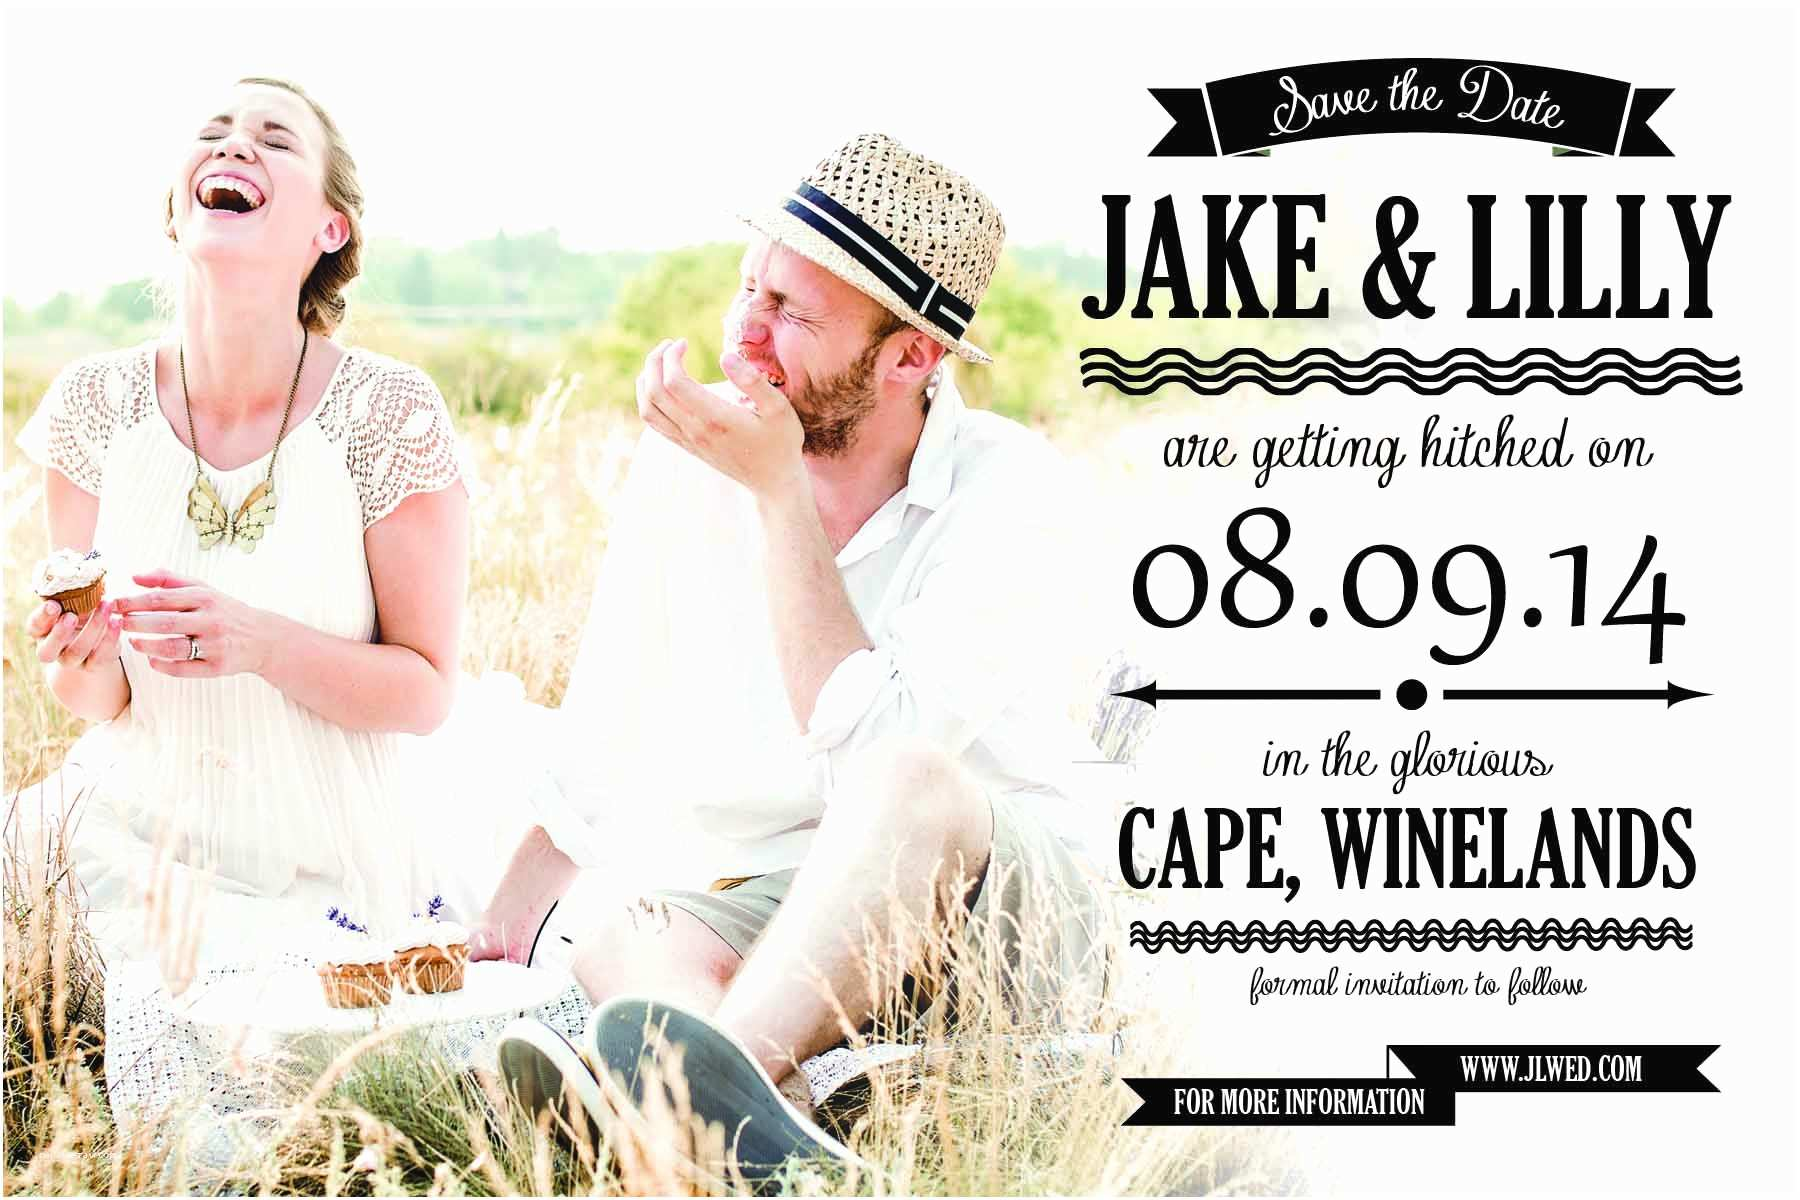 Wedding Invitations and Save the Dates Save the Date Cards Templates for Weddings